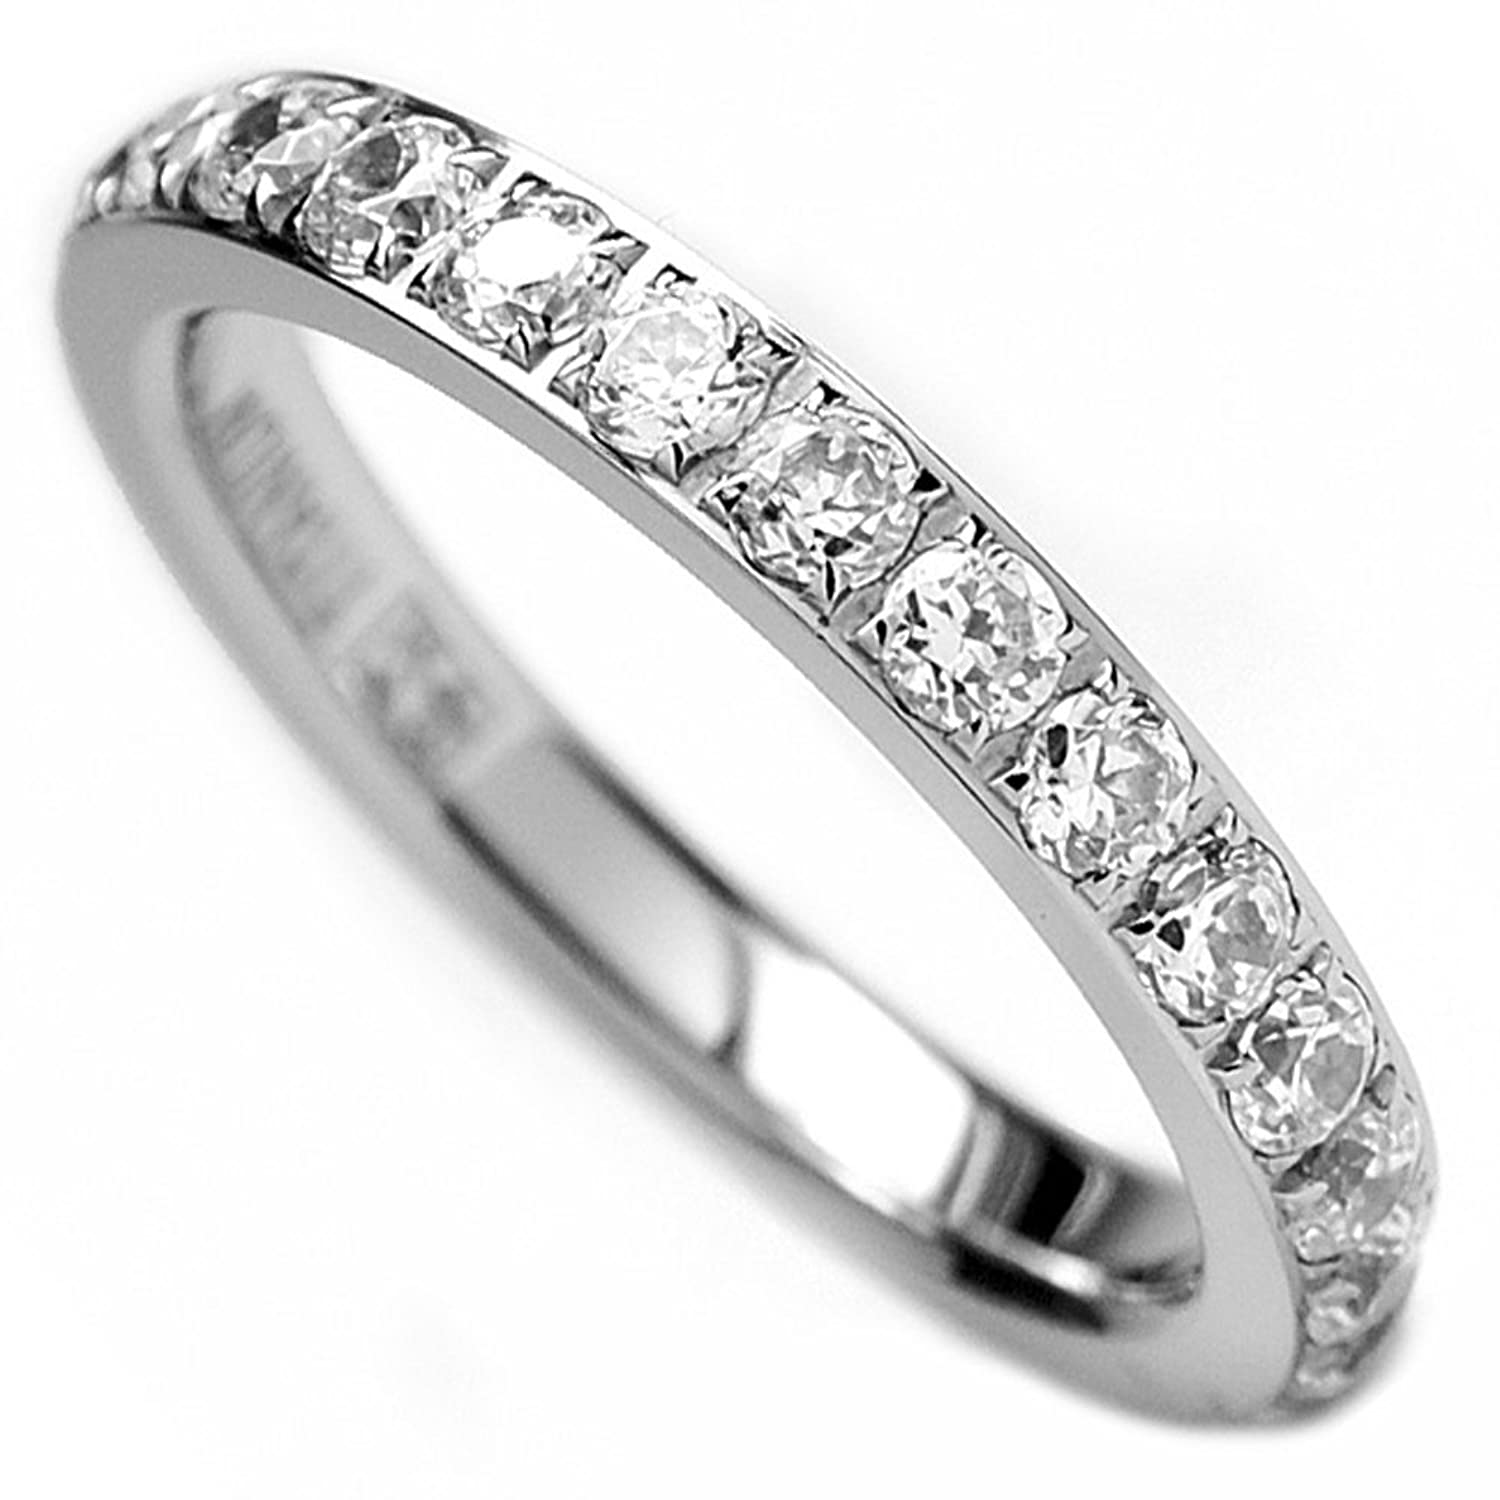 co tiffany band zoom crop eternity product false subsampling ring upscale engagement scale half editor shared setting rings jewellery shop the